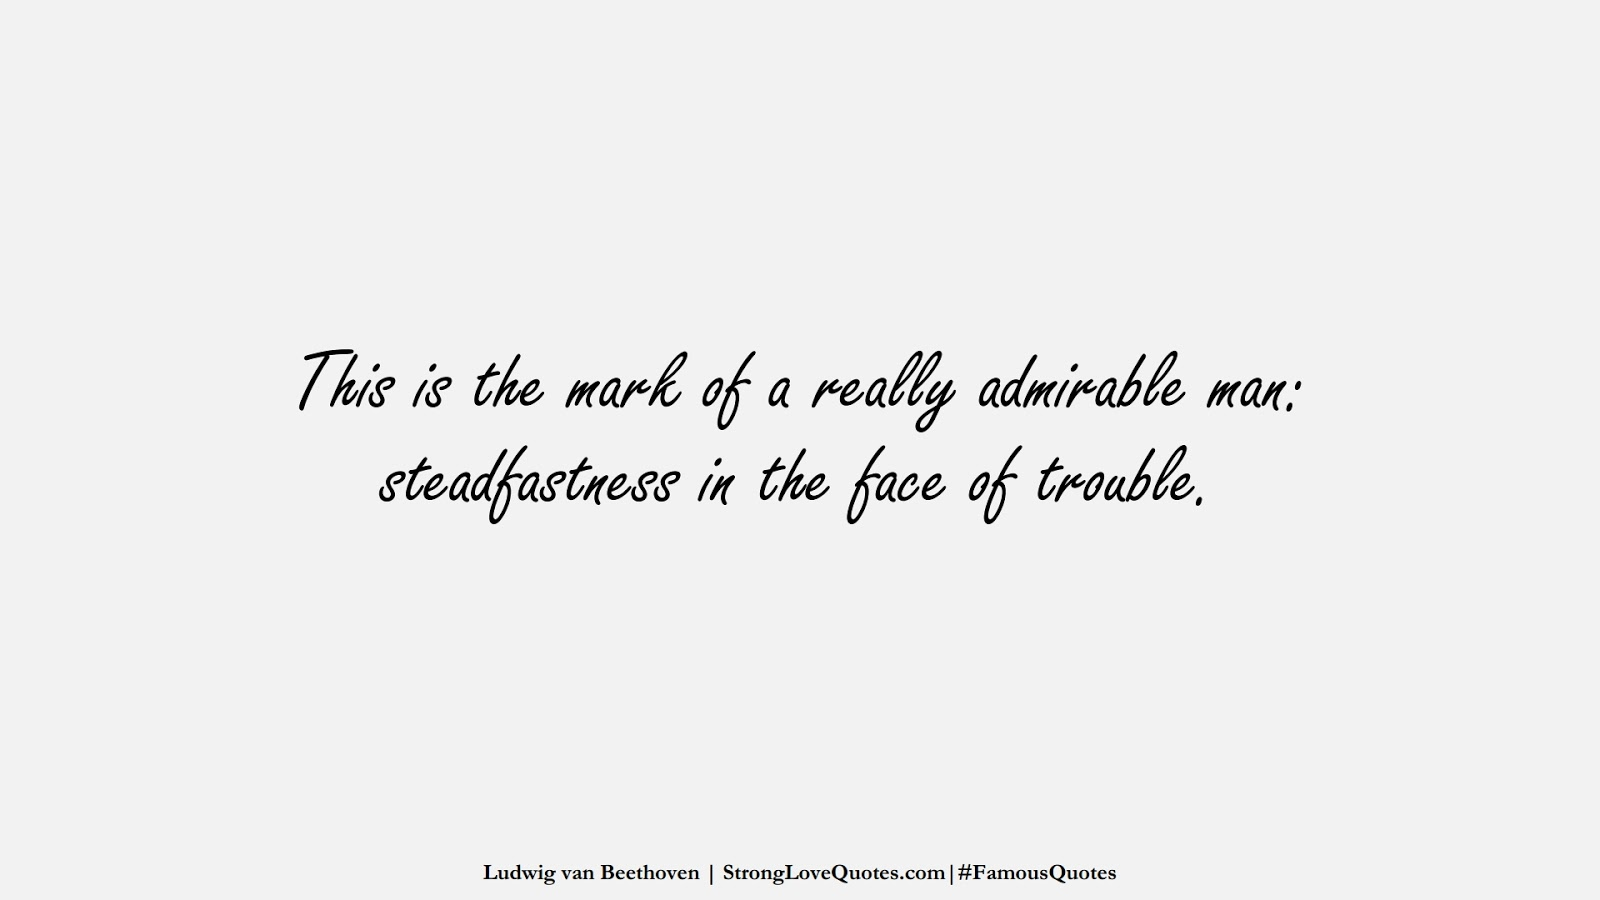 This is the mark of a really admirable man: steadfastness in the face of trouble. (Ludwig van Beethoven);  #FamousQuotes